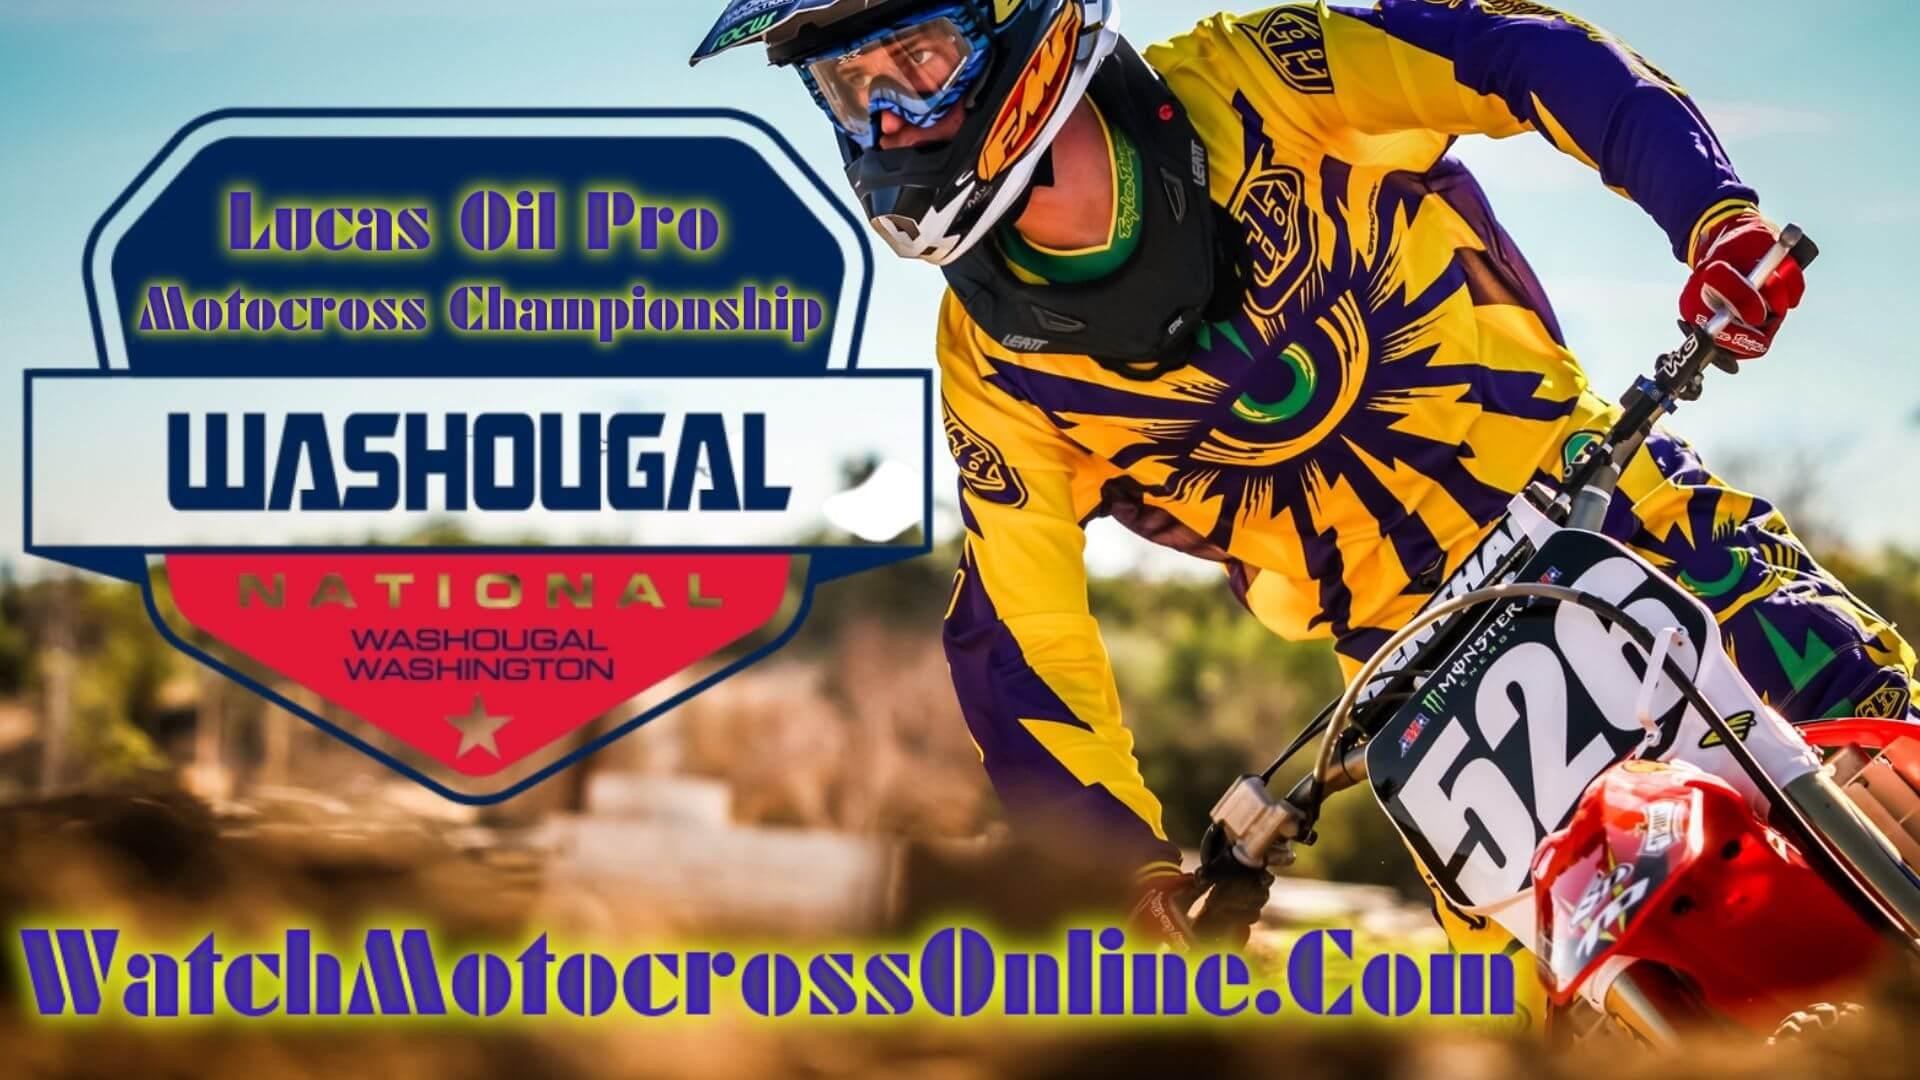 watch-washougal-national-motocross-live